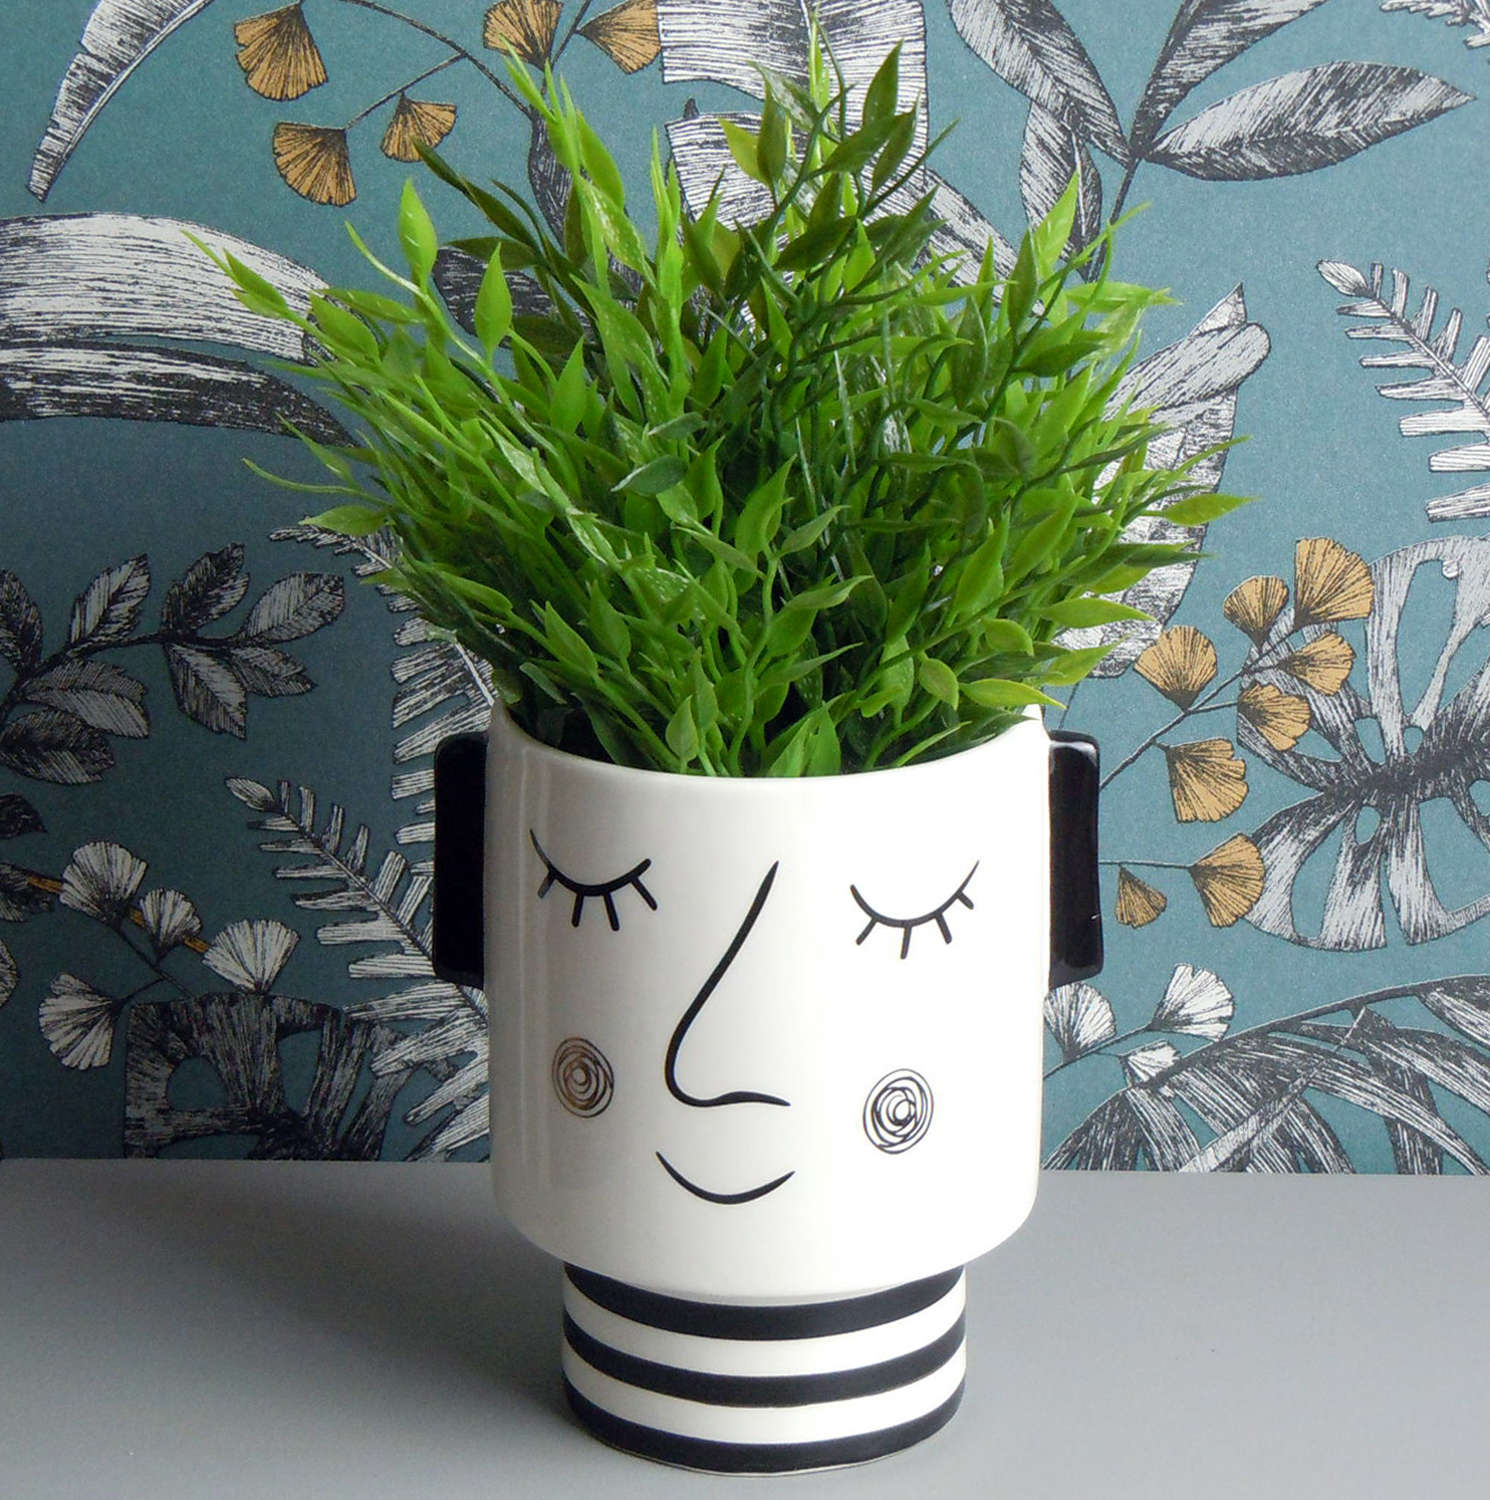 Peggy ceramic planter pot